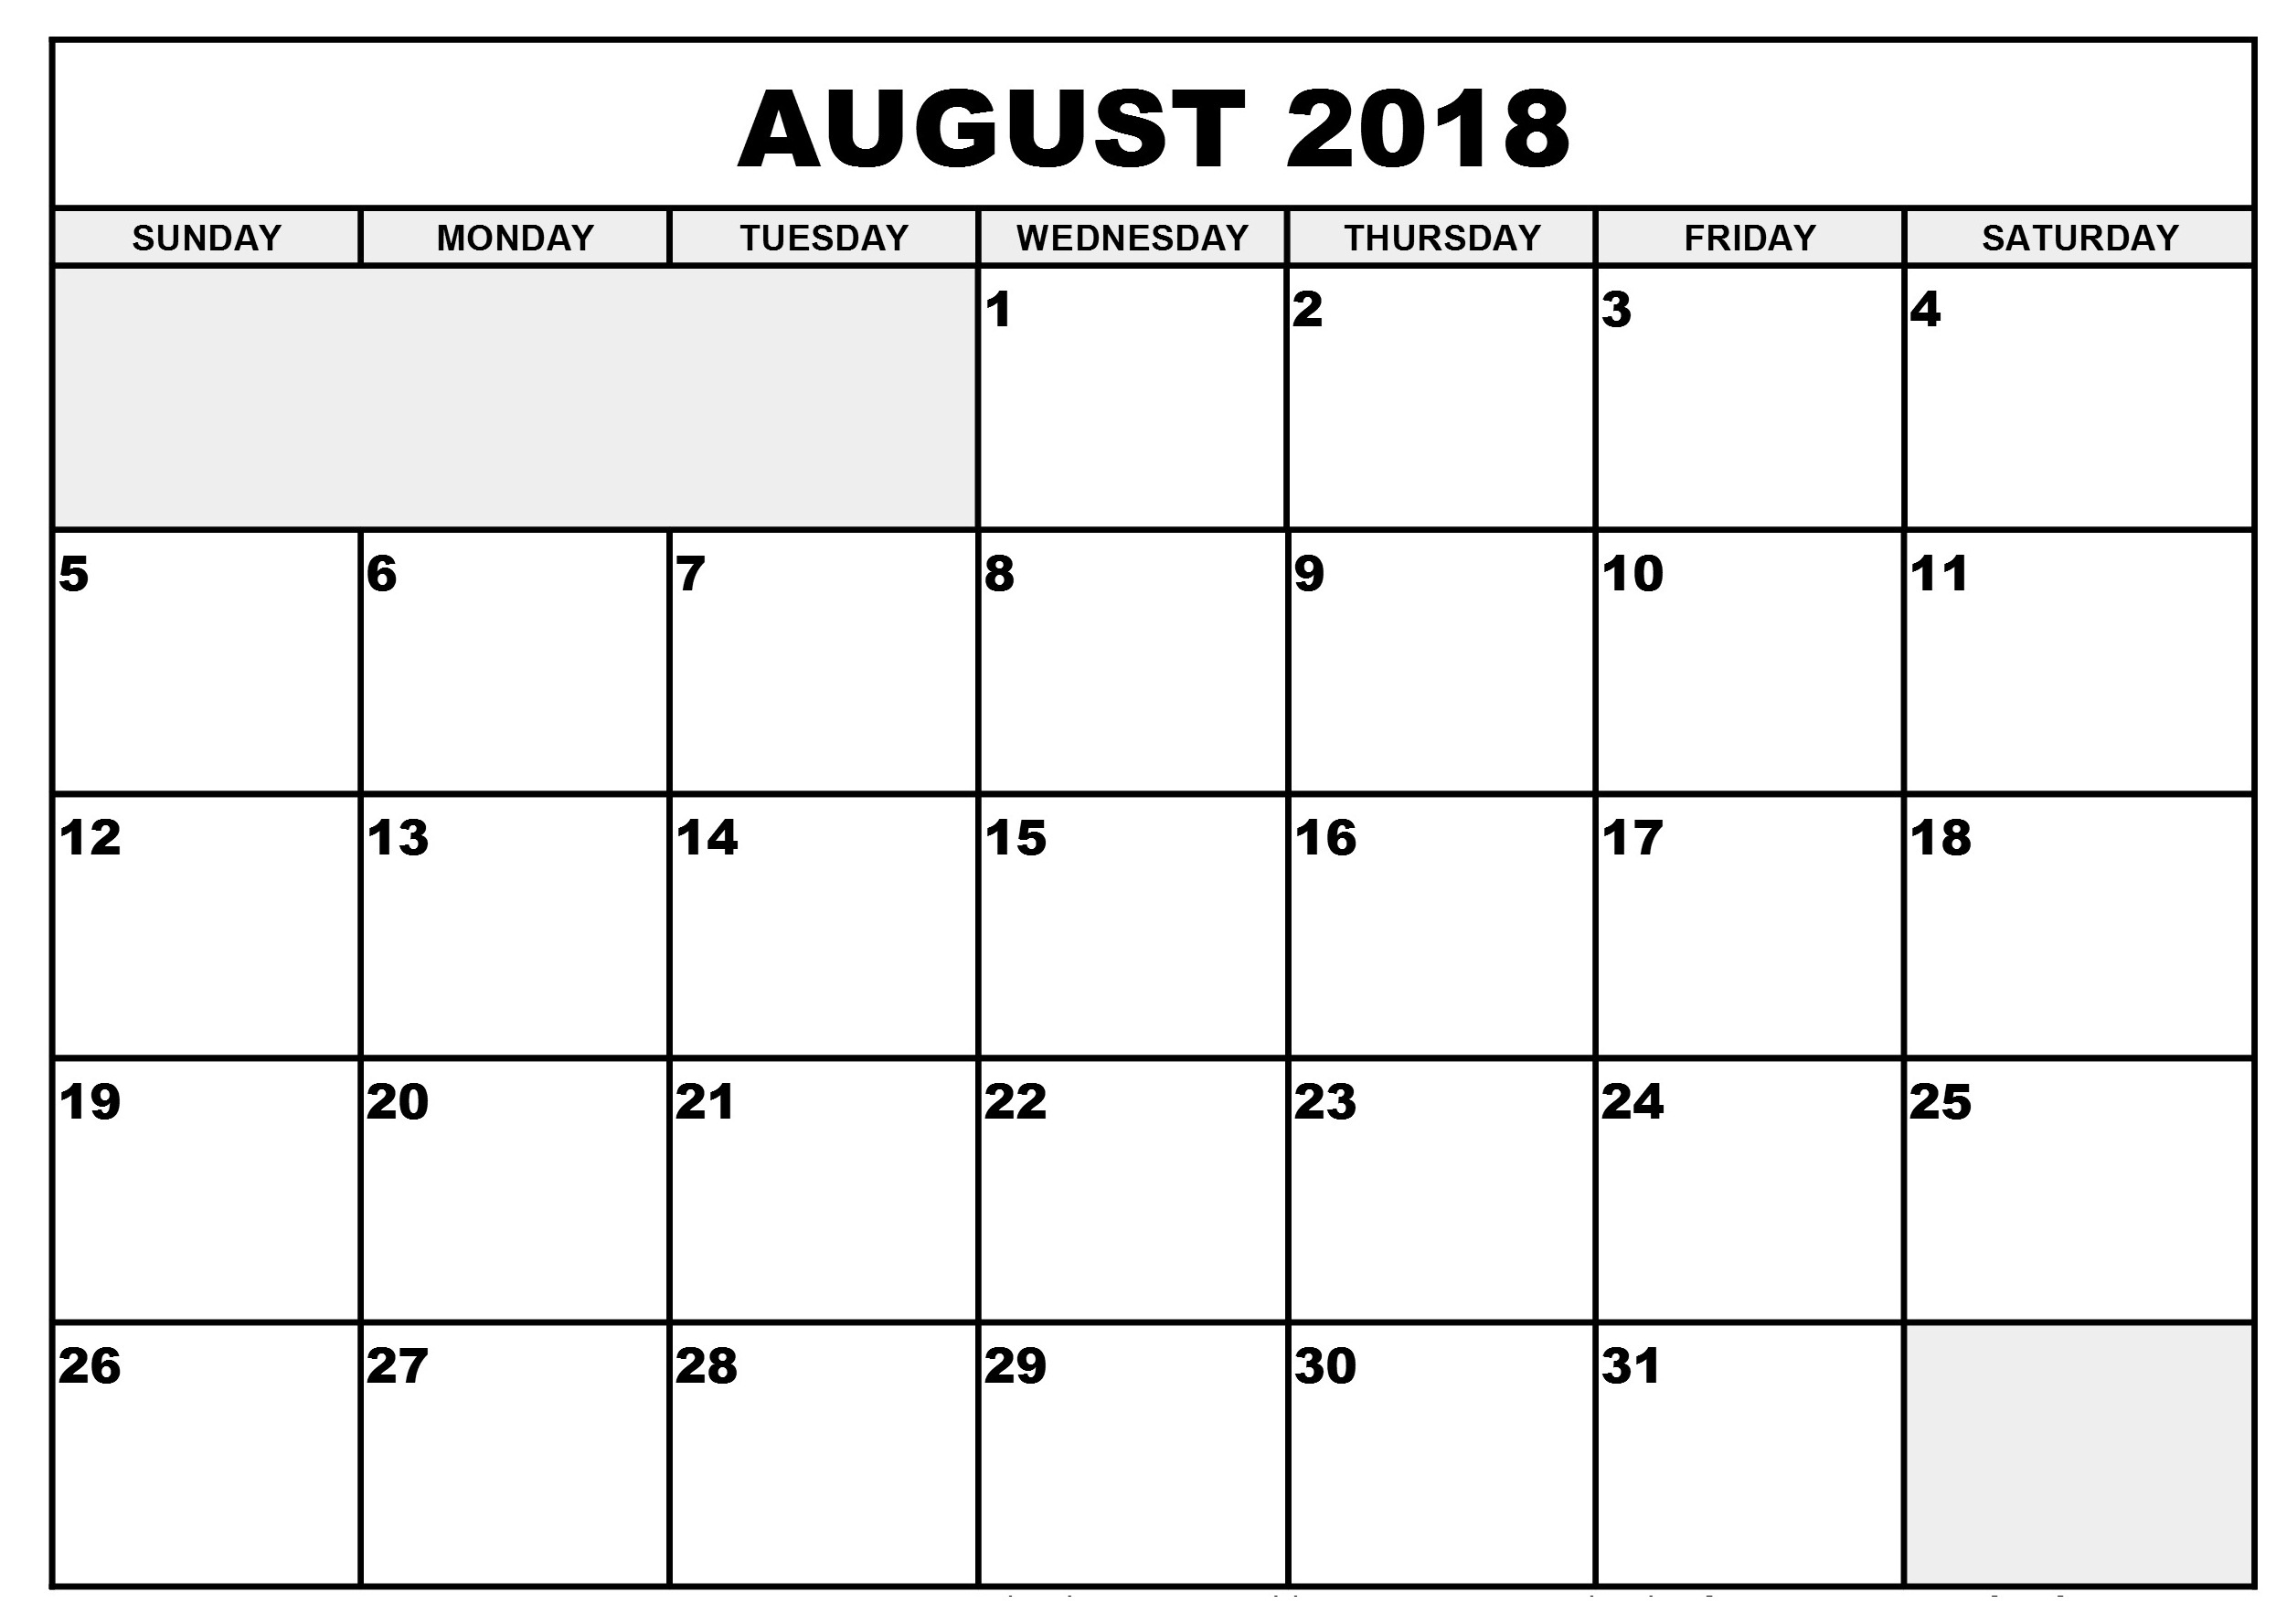 Latest August 2018 calendar printable